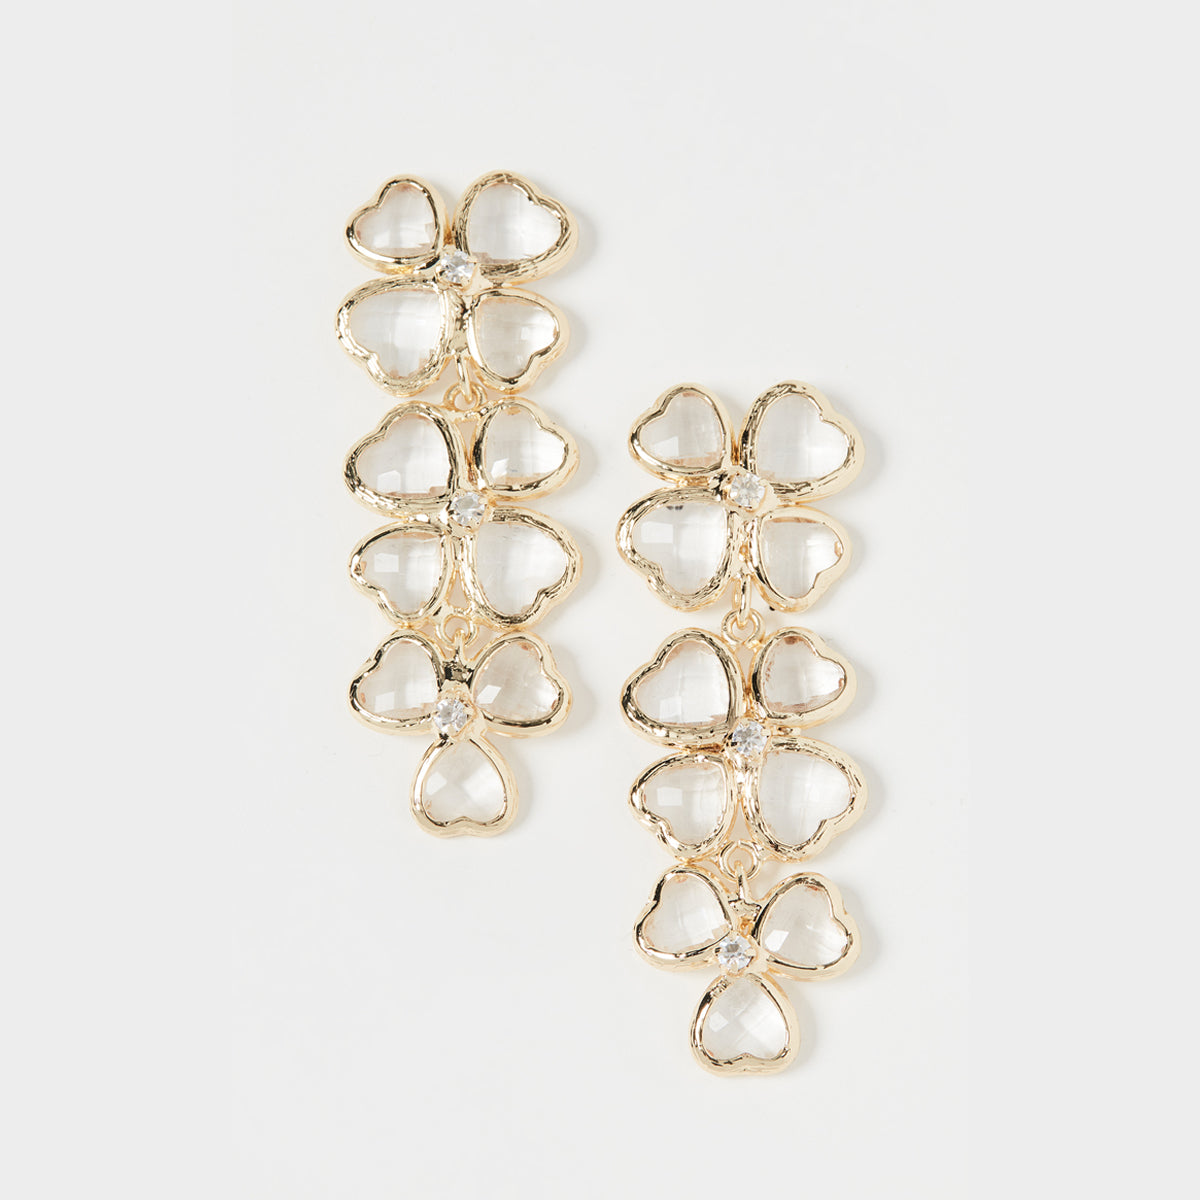 bouton-d-39-or-earrings